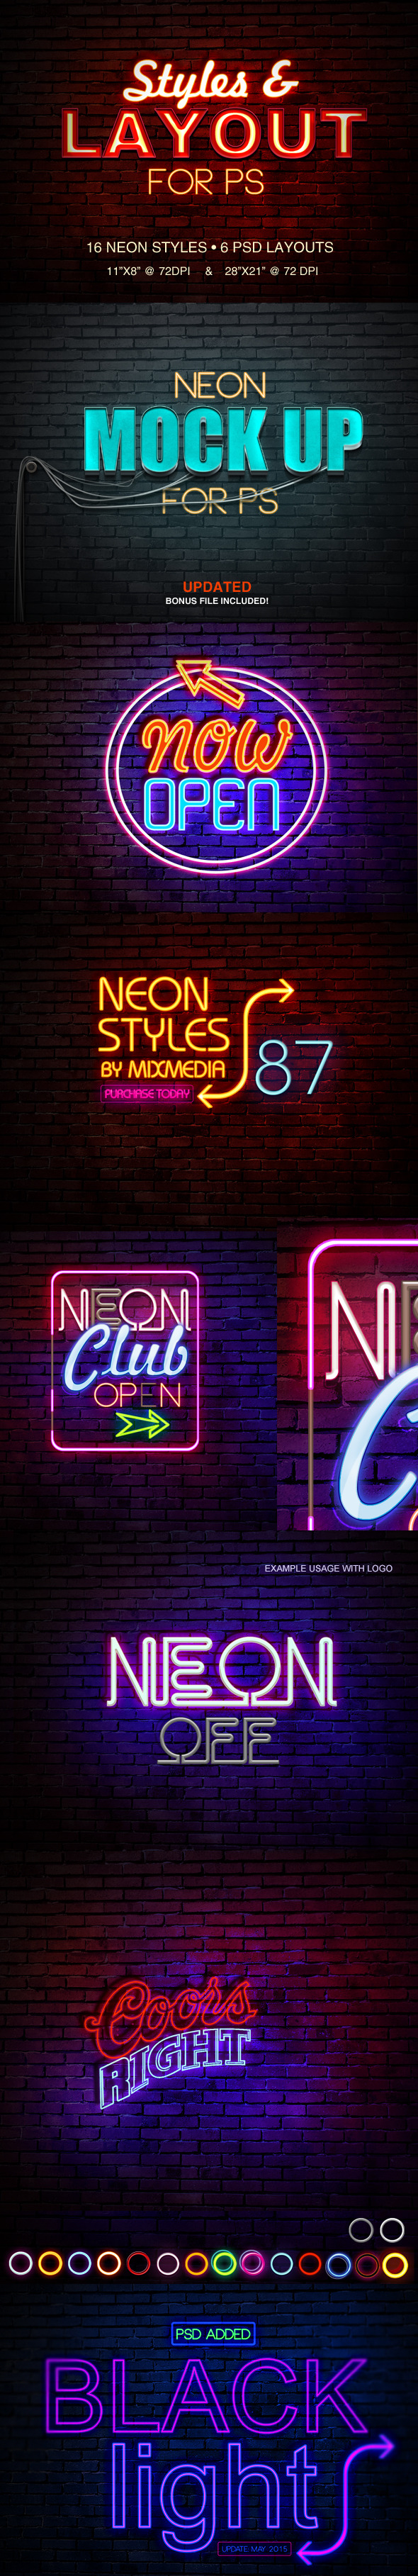 [Image: neon%20preview.jpg]